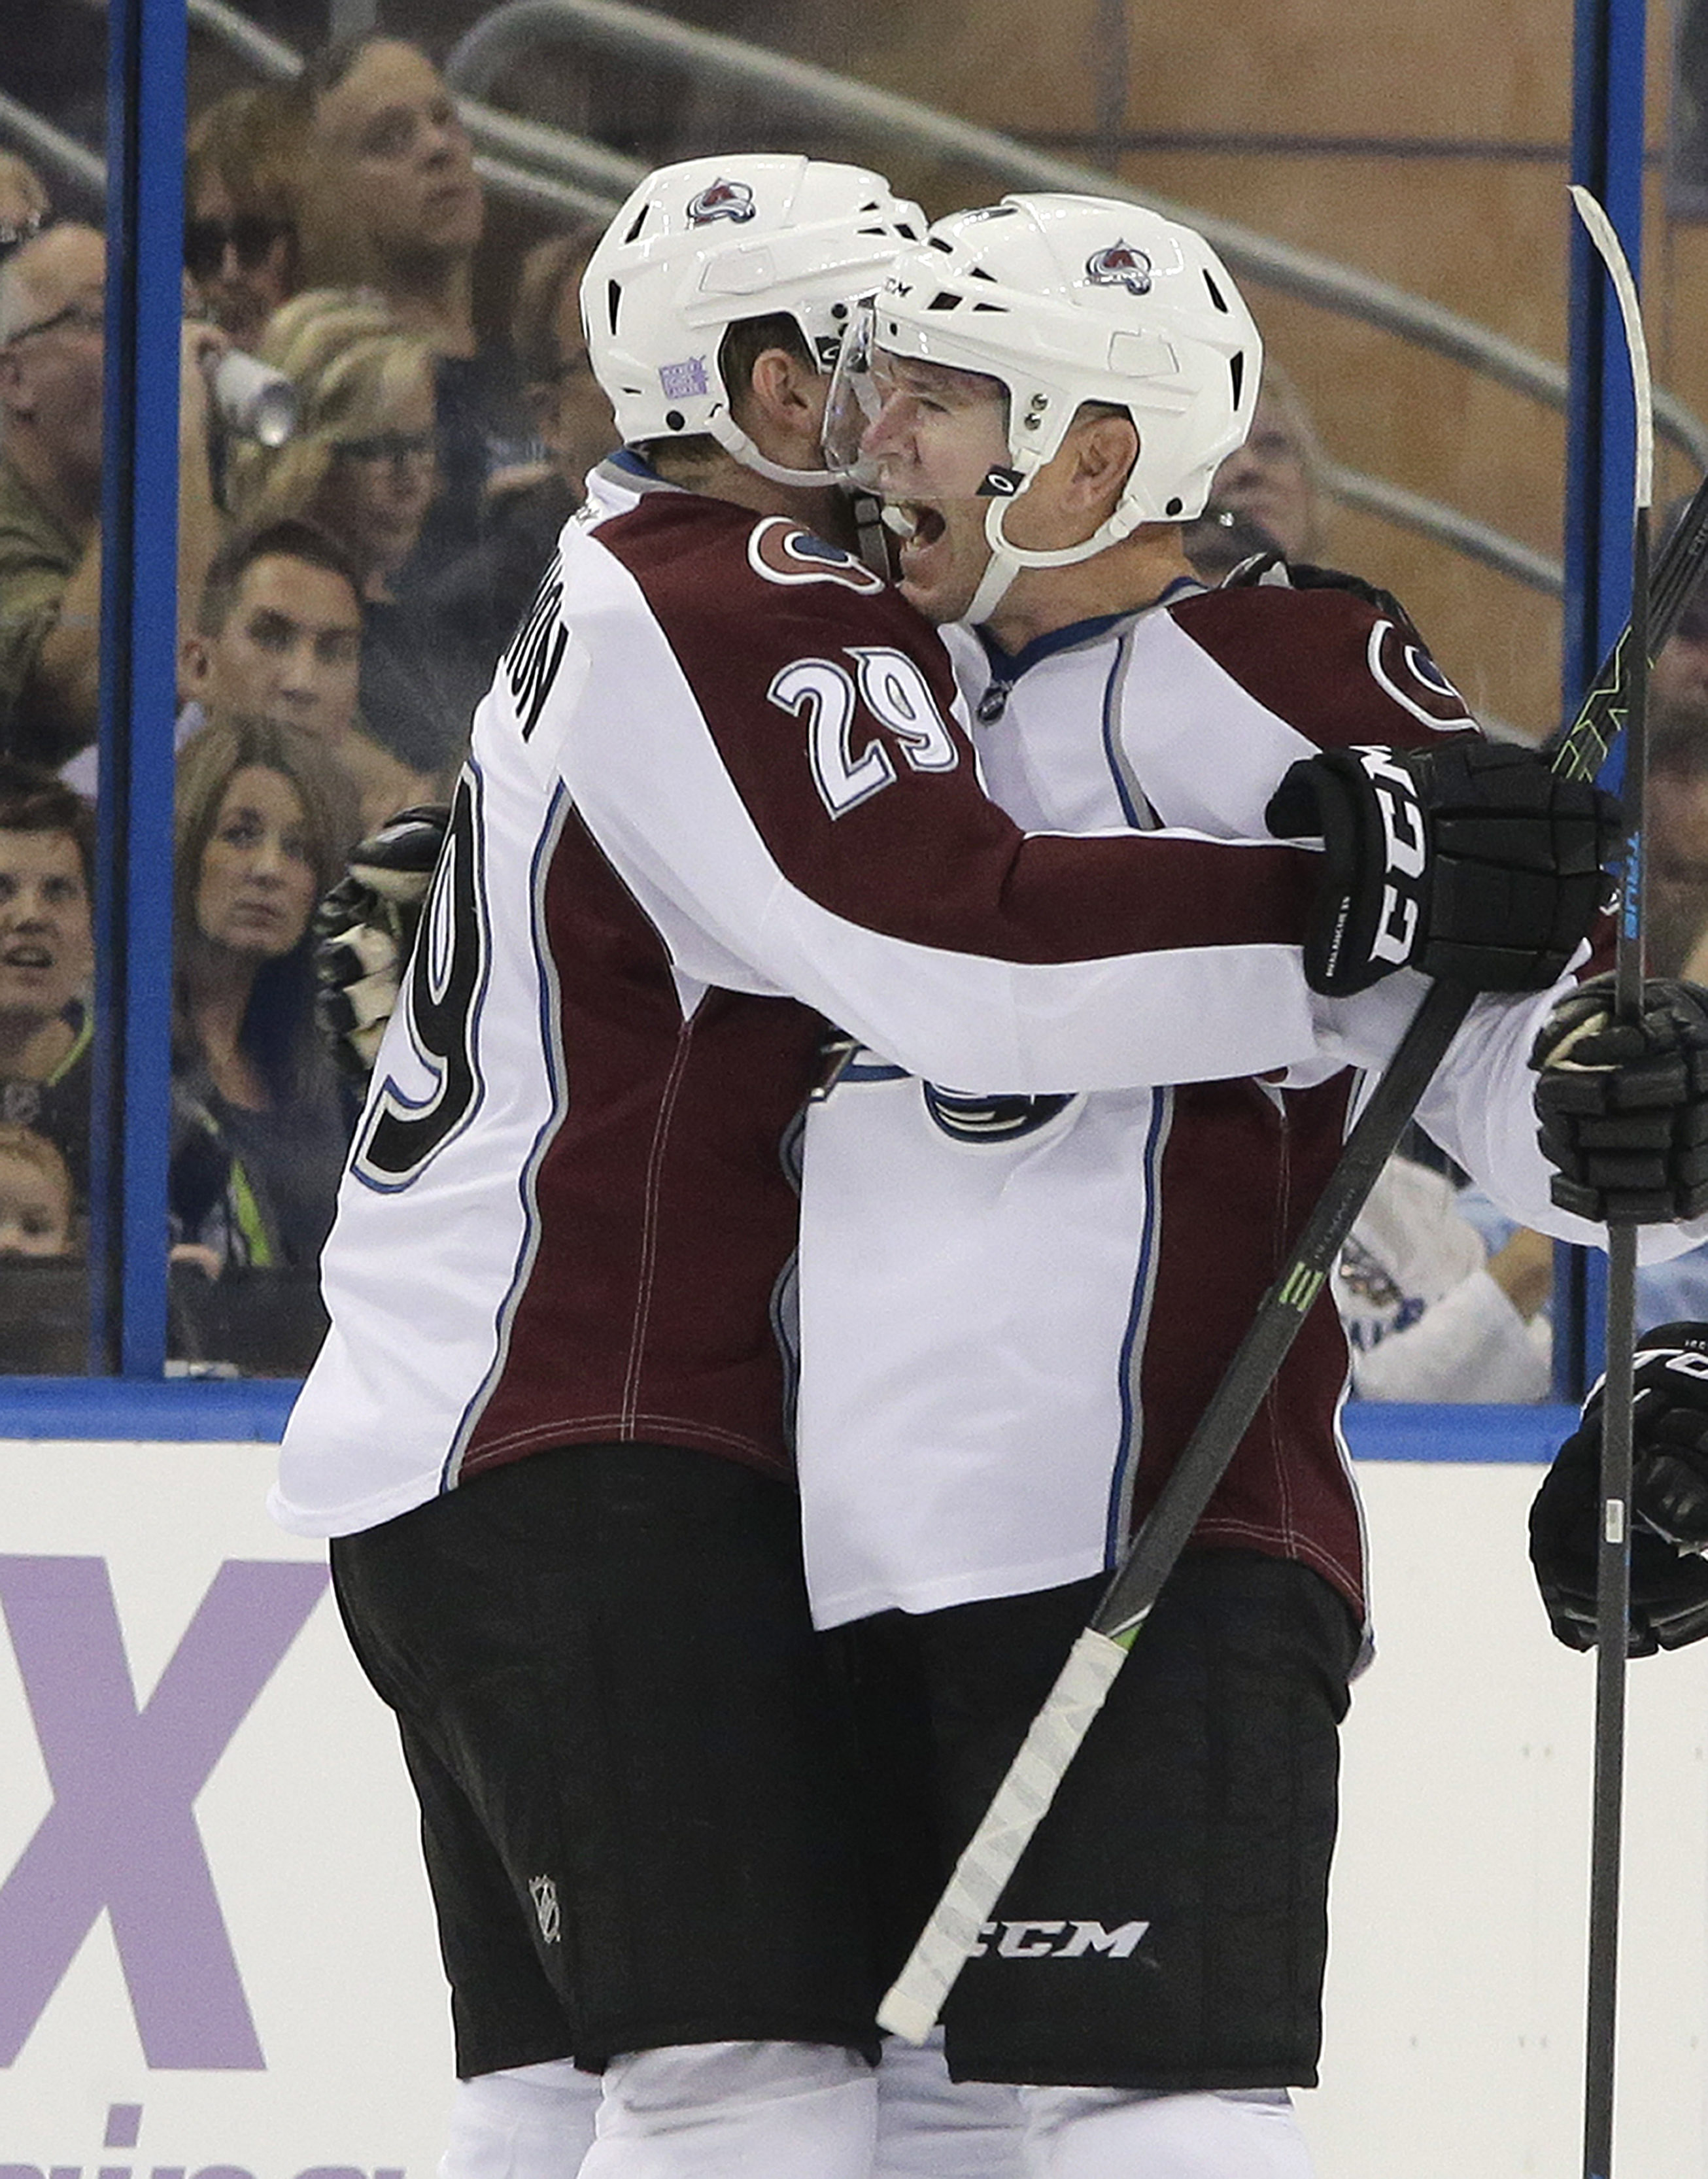 Colorado Avalanche left wing Alex Tanguay, right, celebrates with teammate center Nathan MacKinnon after scoring against the Tampa Bay Lightning during the first period of an NHL hockey game Thursday, Oct. 29, 2015, in Tampa, Fla. (AP Photo/Chris O'Meara)